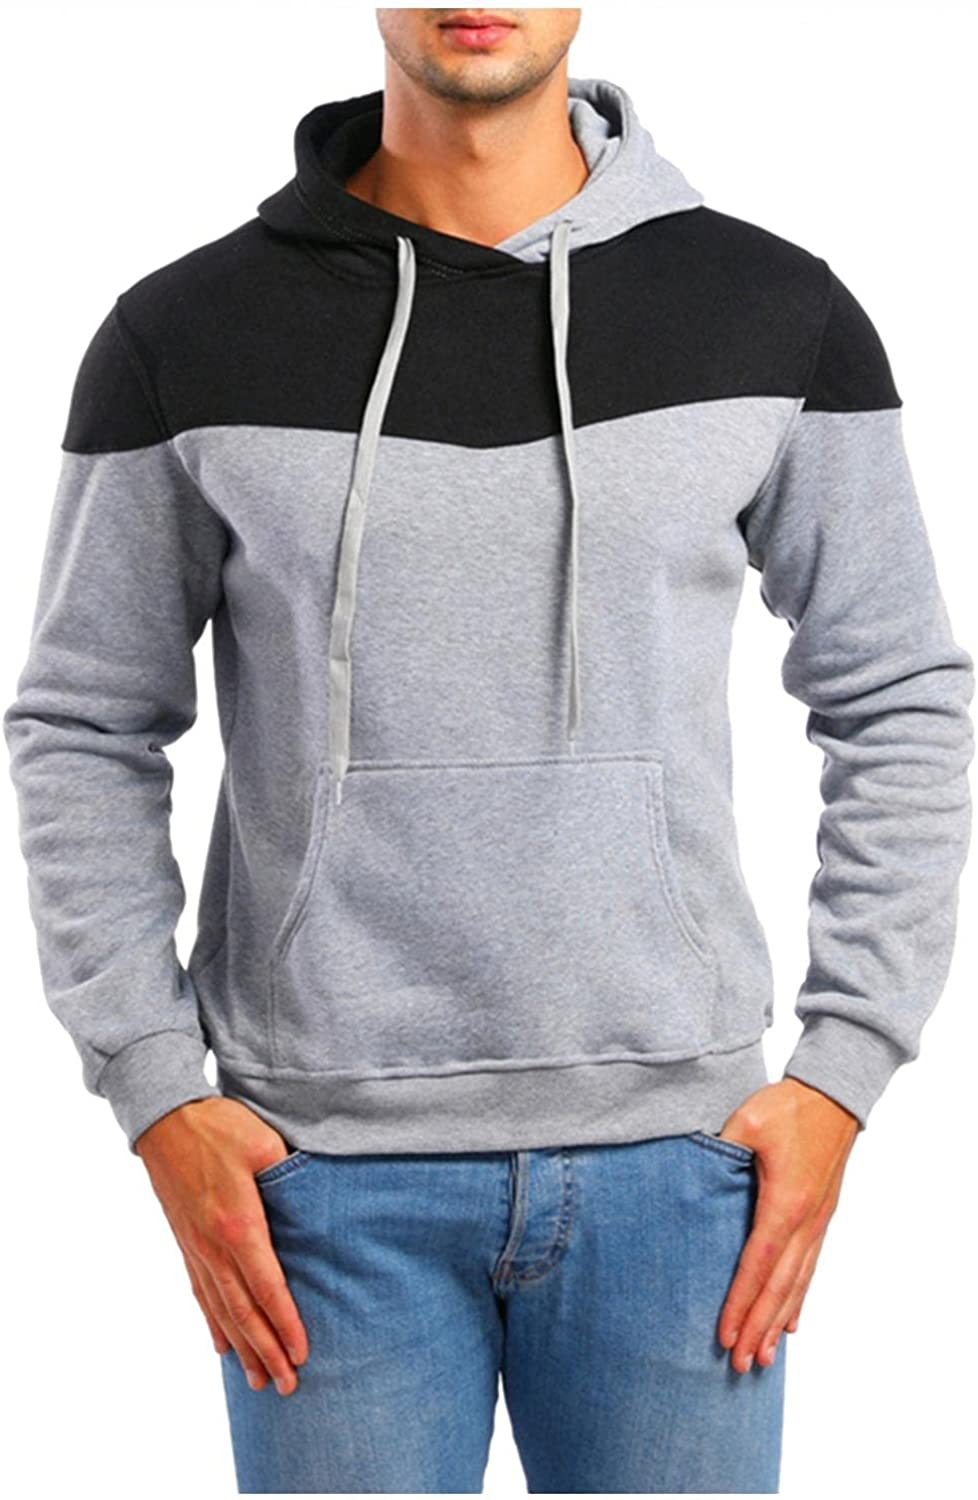 Hoodies for Men Mens Fashion Tops Casual Pullover Sport Athletic Hoodie Plain Long Sleeve Sweatshirts for Men